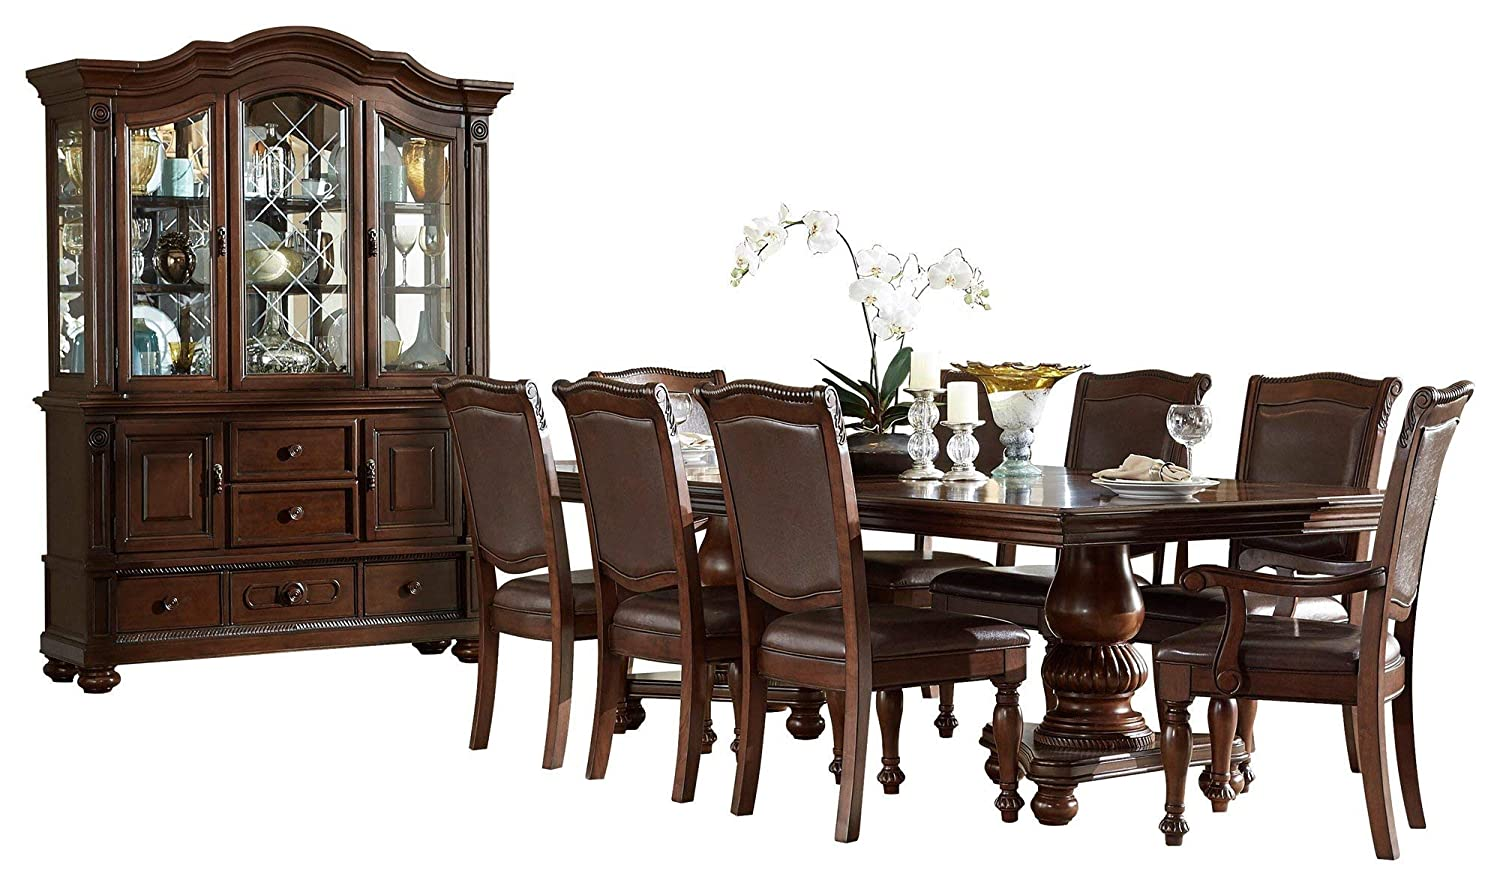 Licona Traditional 10PC Dining Set Double Pedestal Table, 2 Arm Chair, 6 Side Chair, Buffet & Hutch in Brown Cherry